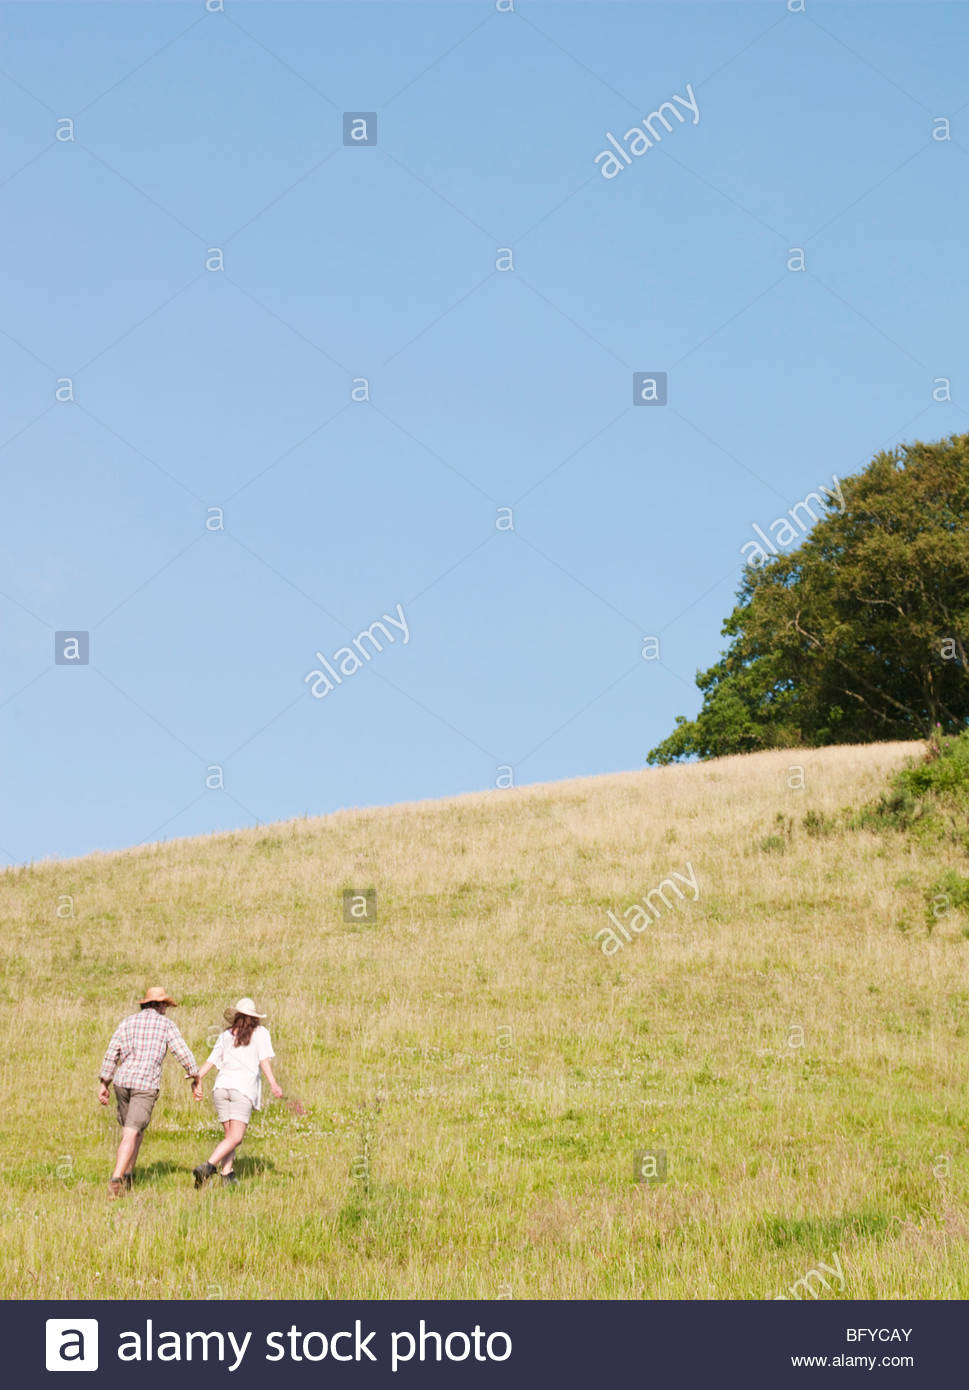 Man and woman walking up hill - Stock Image